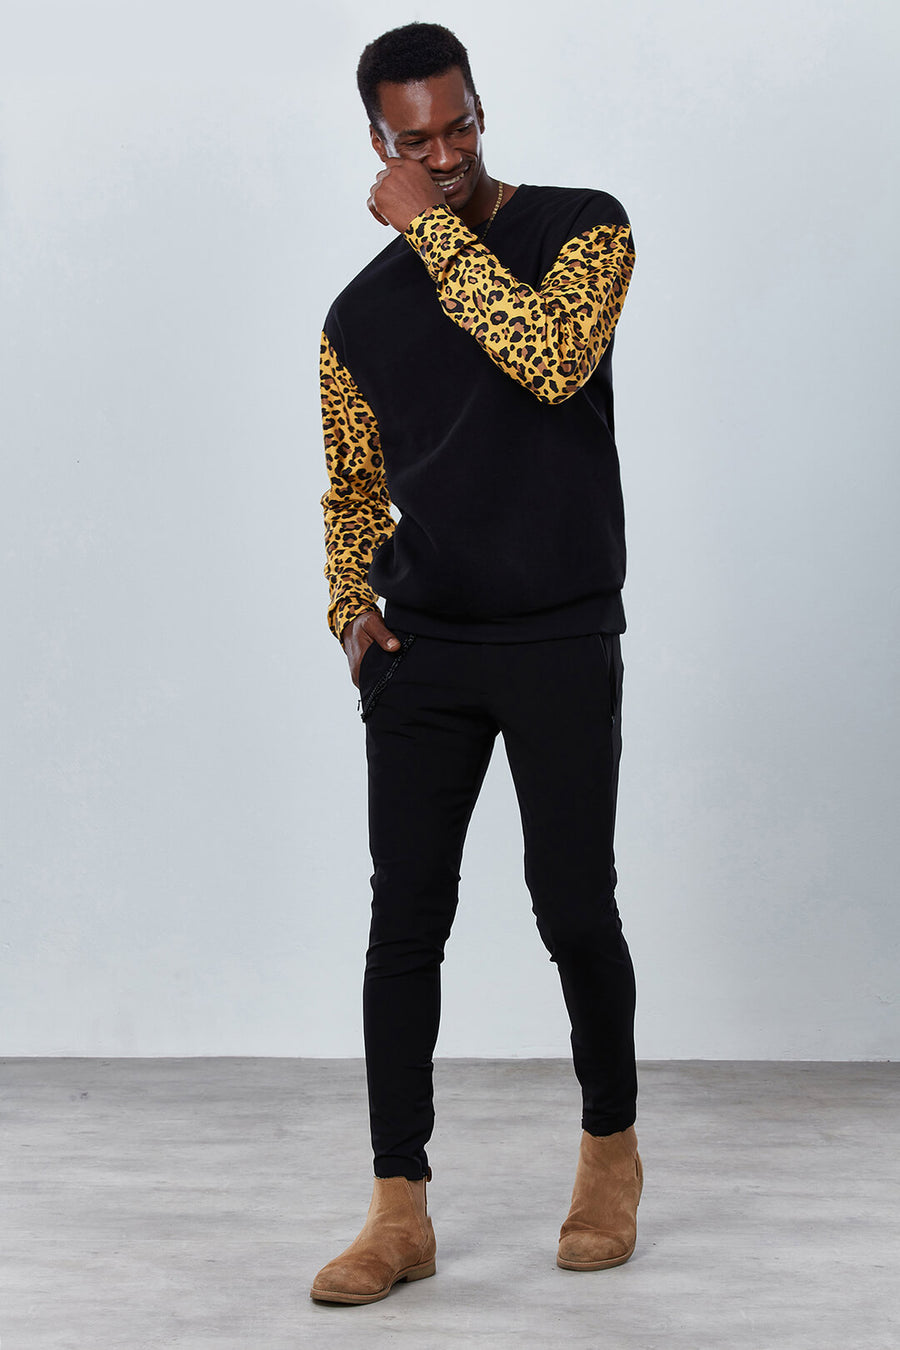 DDG3059 Wild Animal Print Sweatshirt with Black Sleeves Dear Deer front